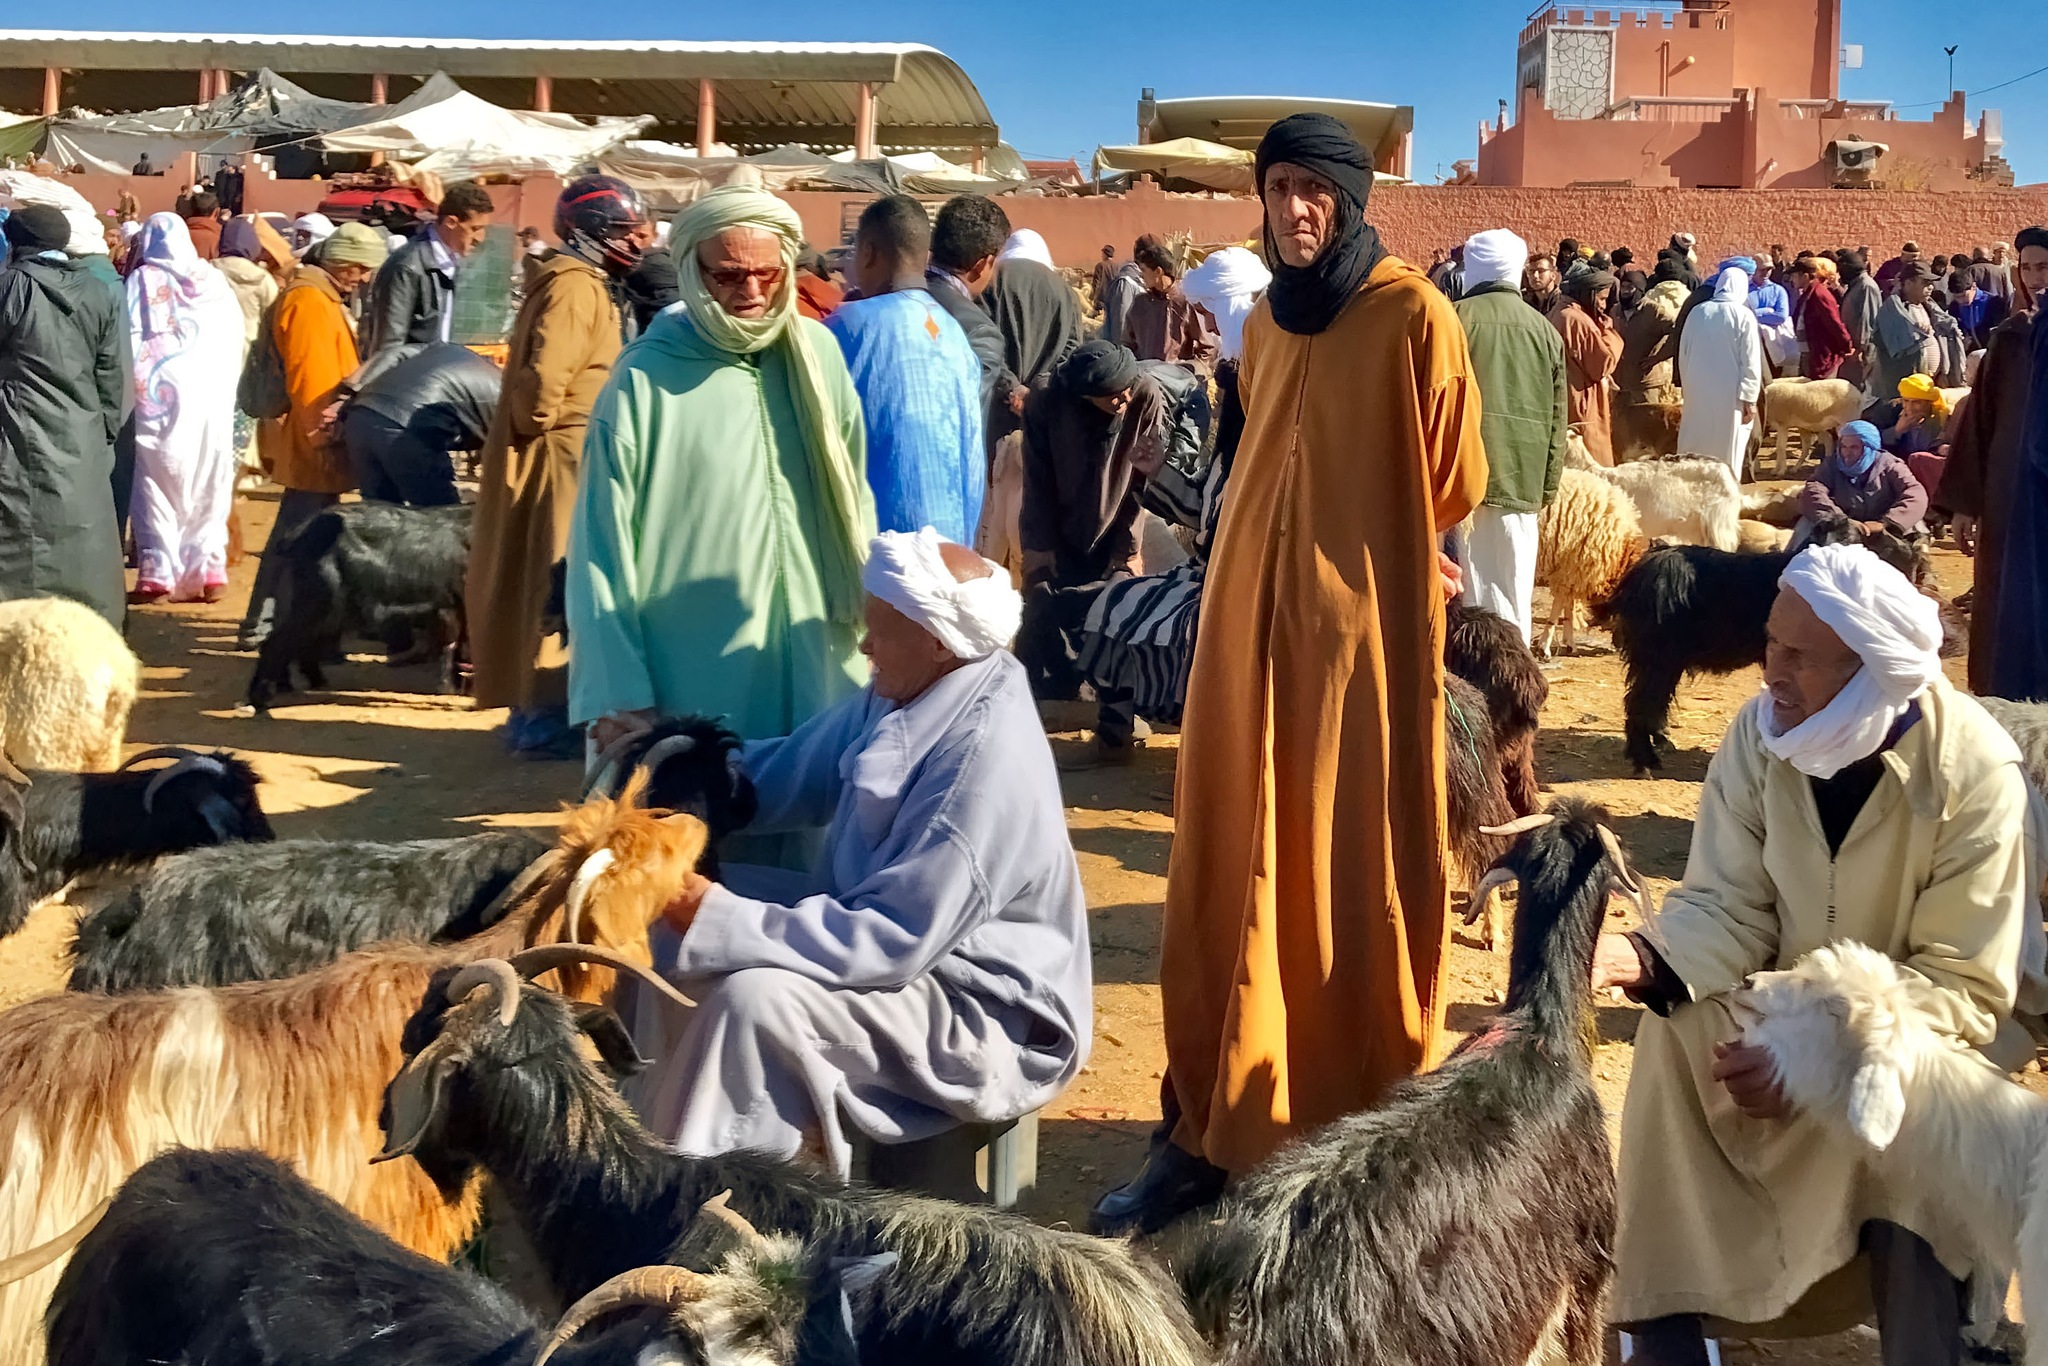 At the market at Guelmim in Morocco. by Erwin Widmer